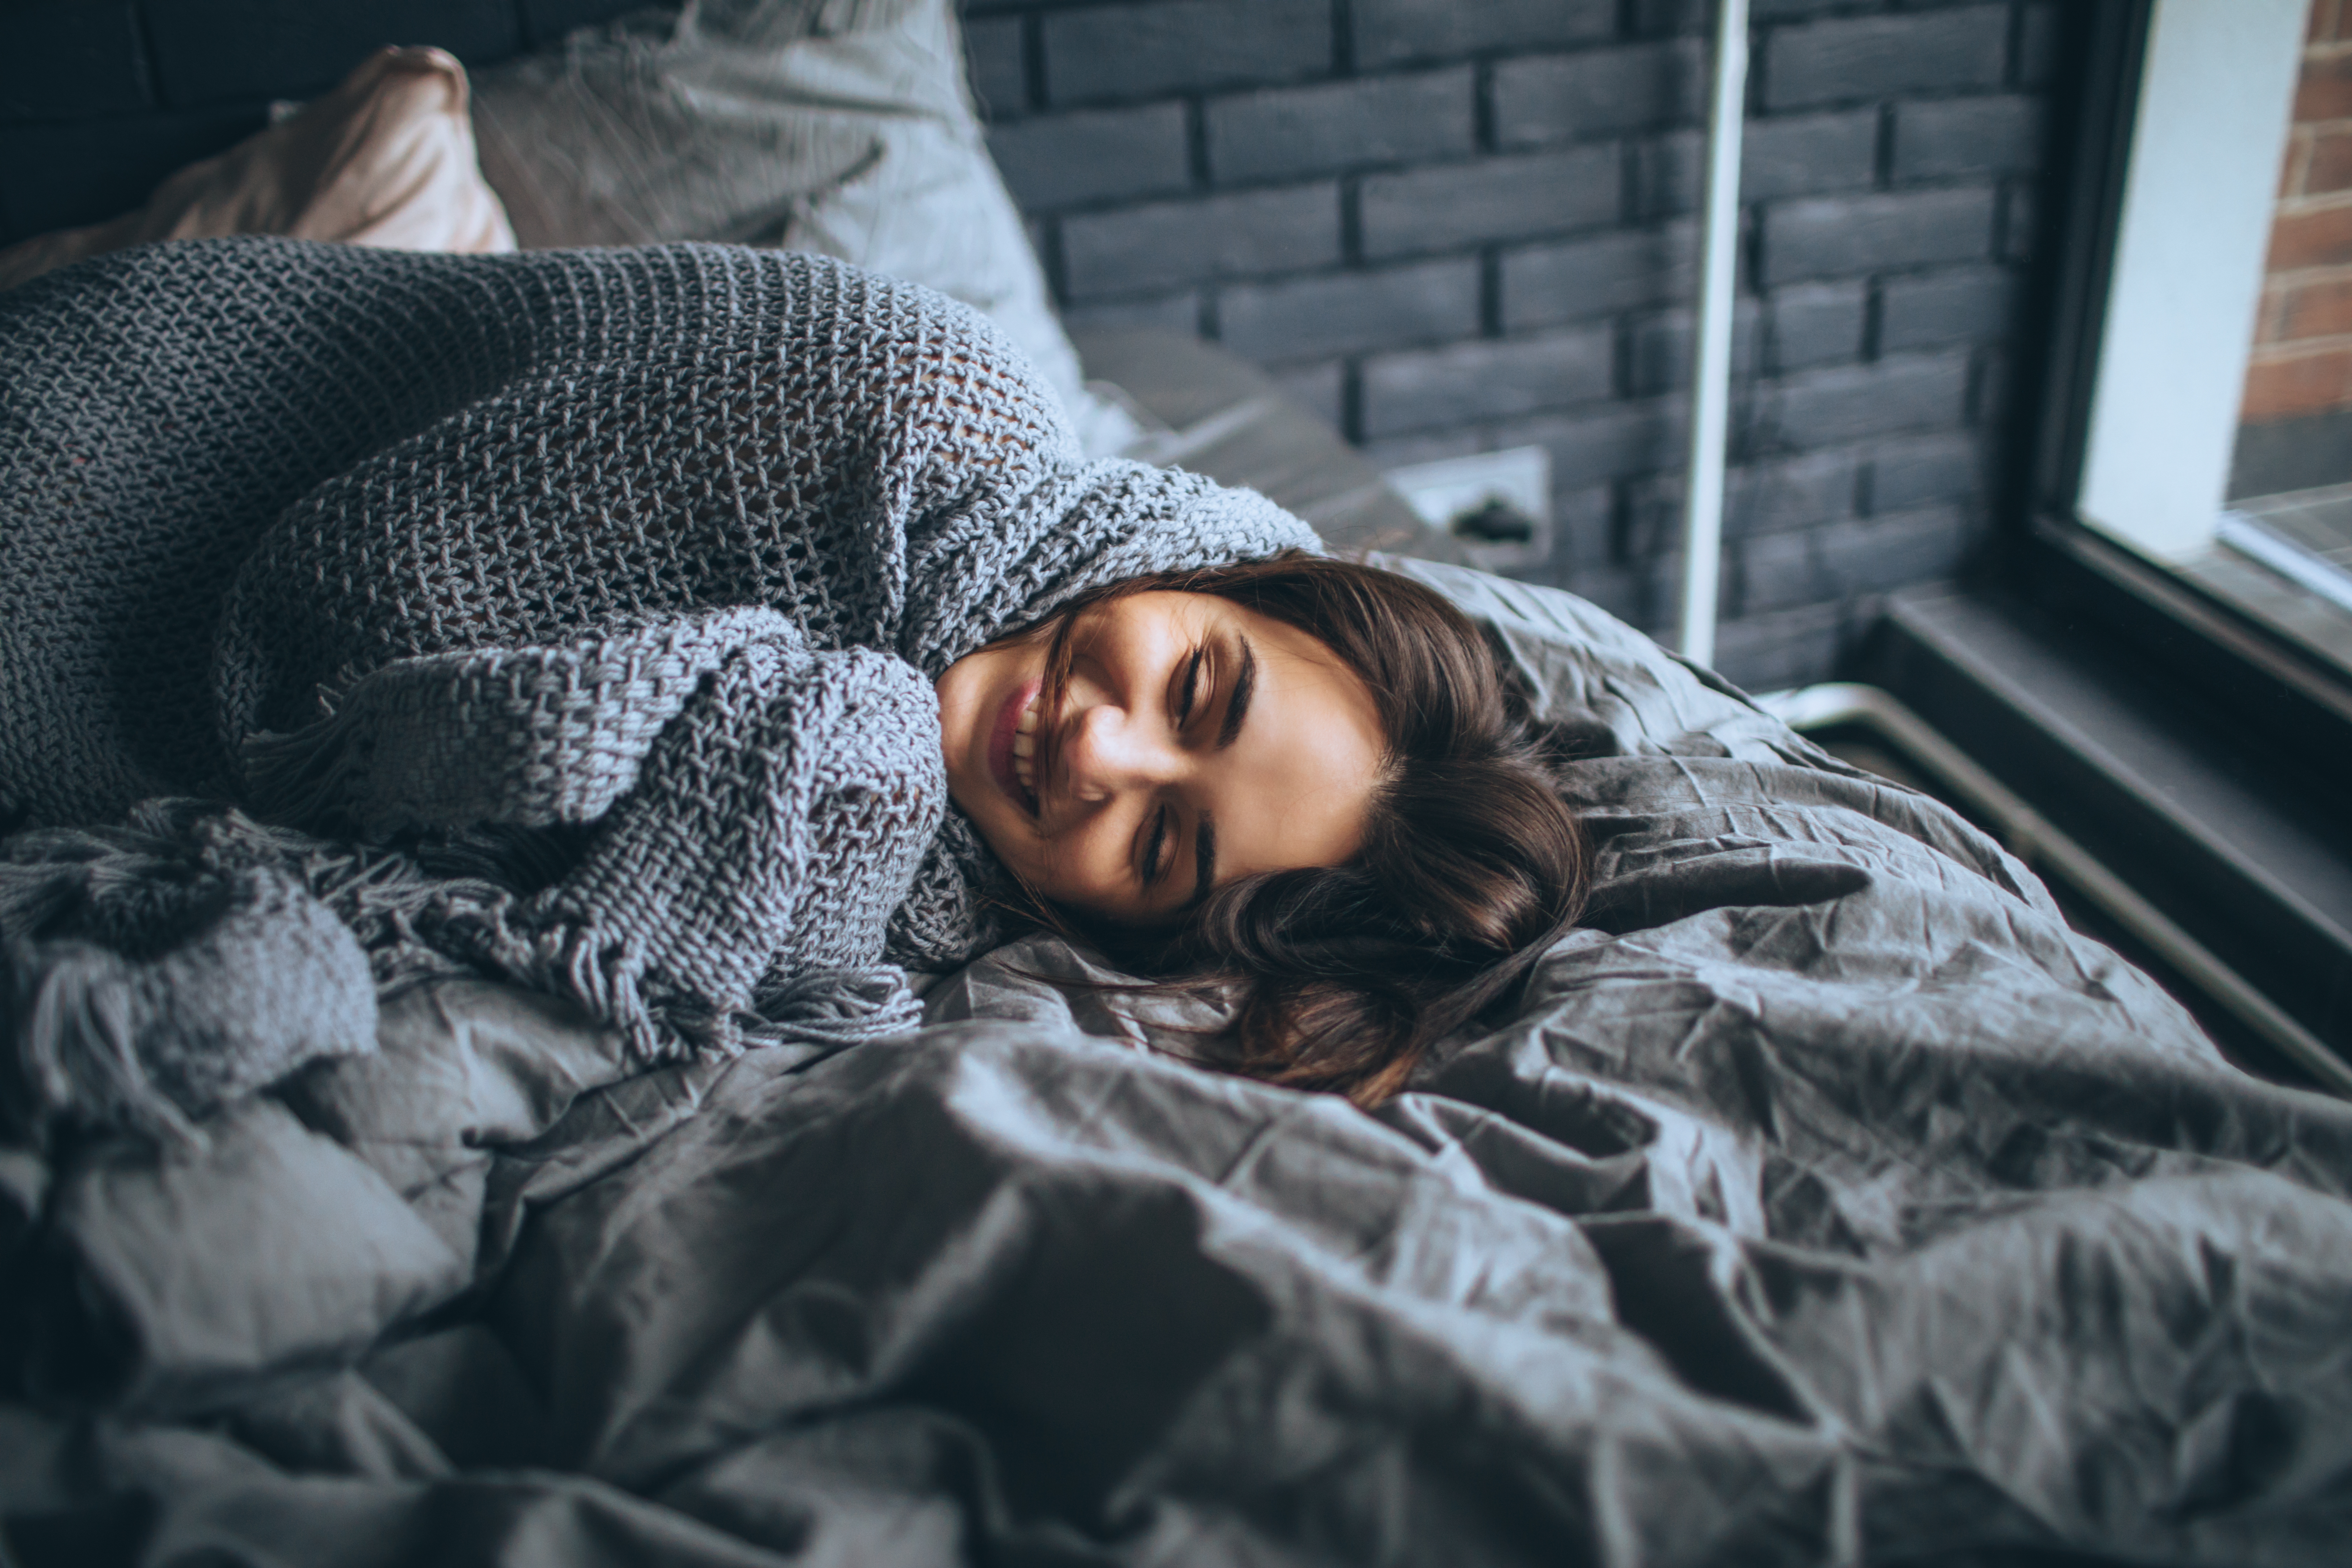 young woman smiles as she wraps herself in gray knitted throw